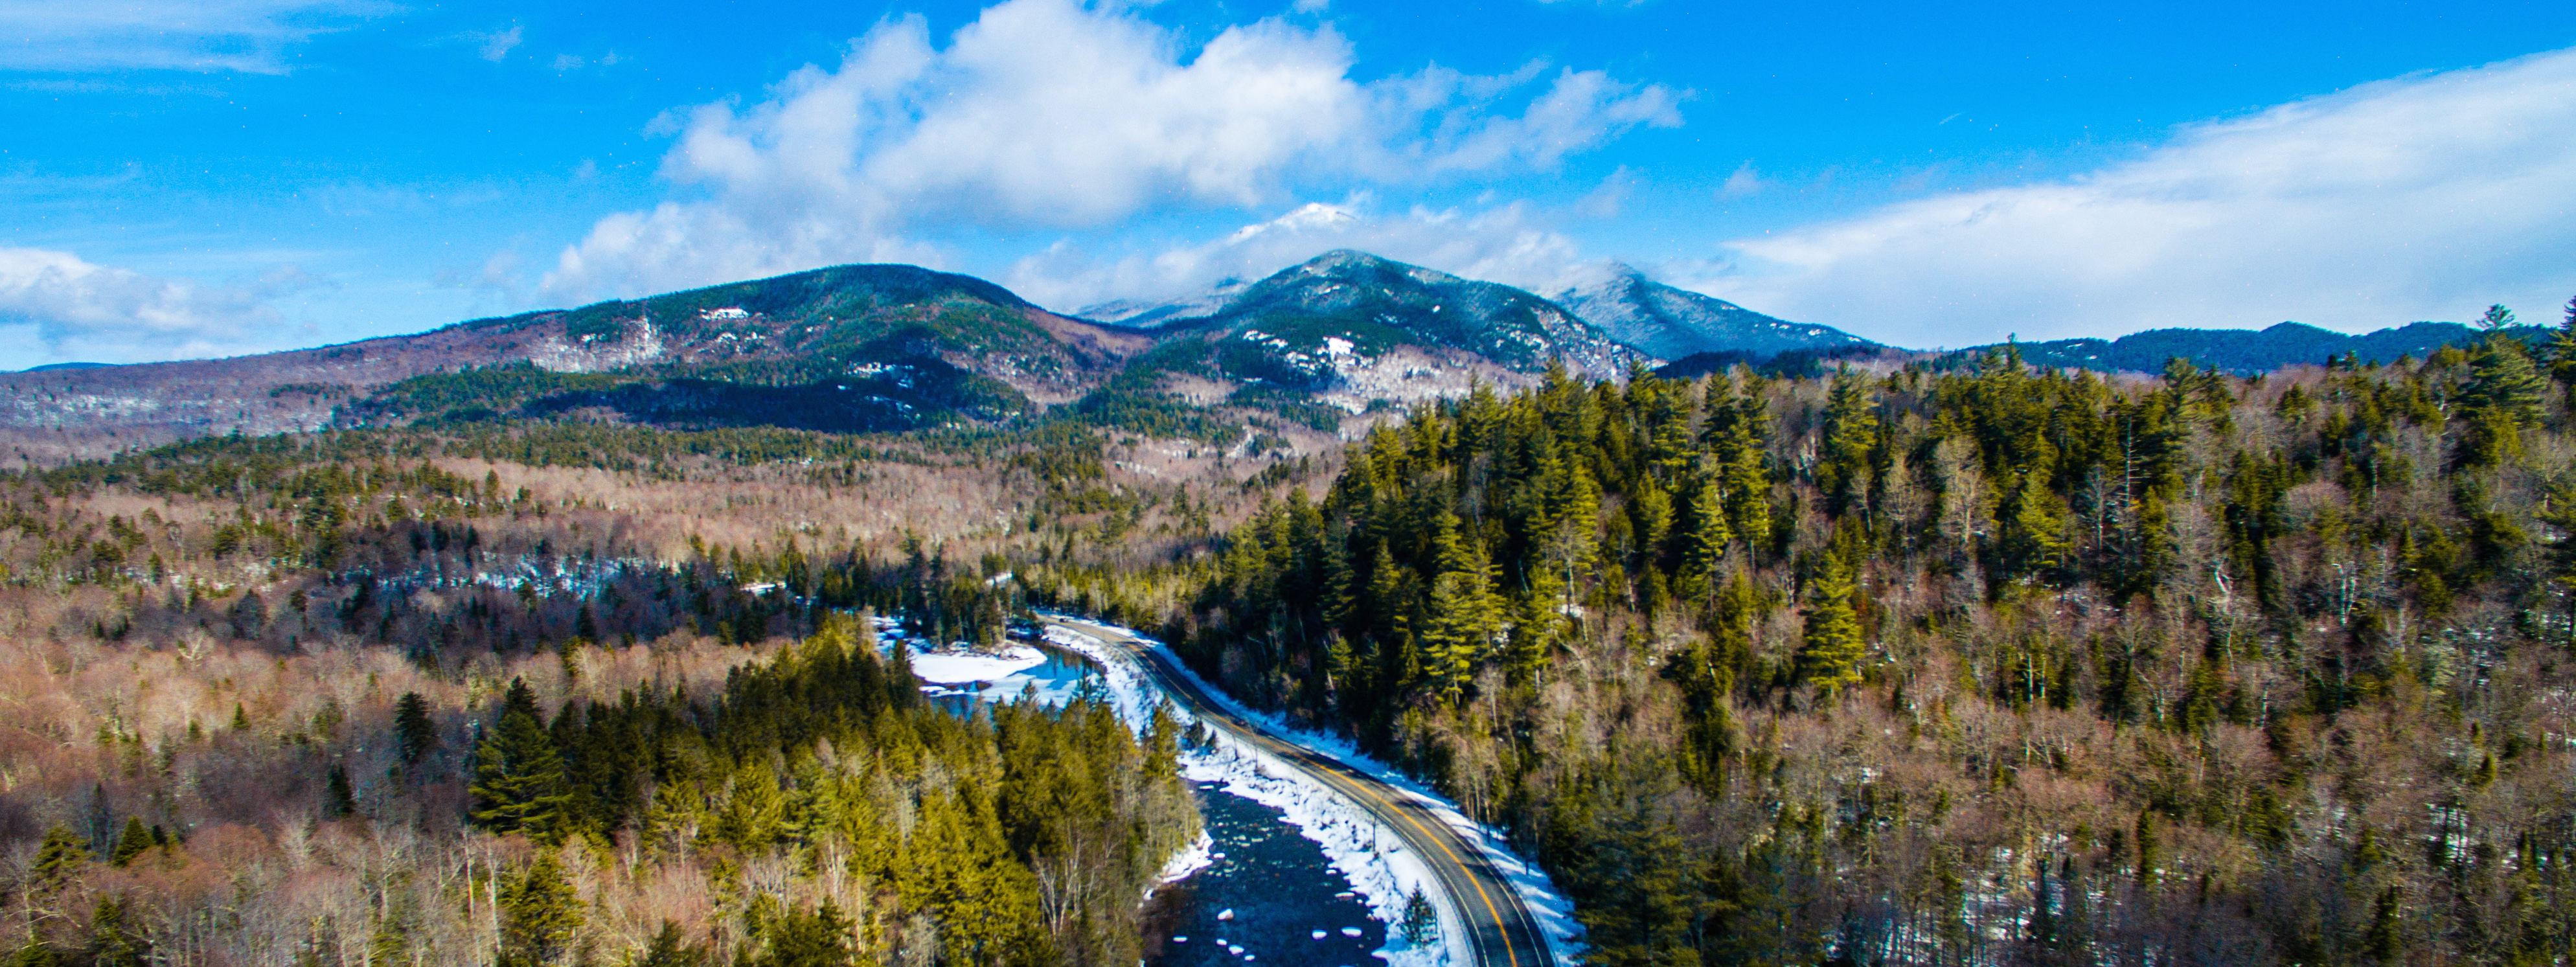 Adirondacks Travel Market Insight